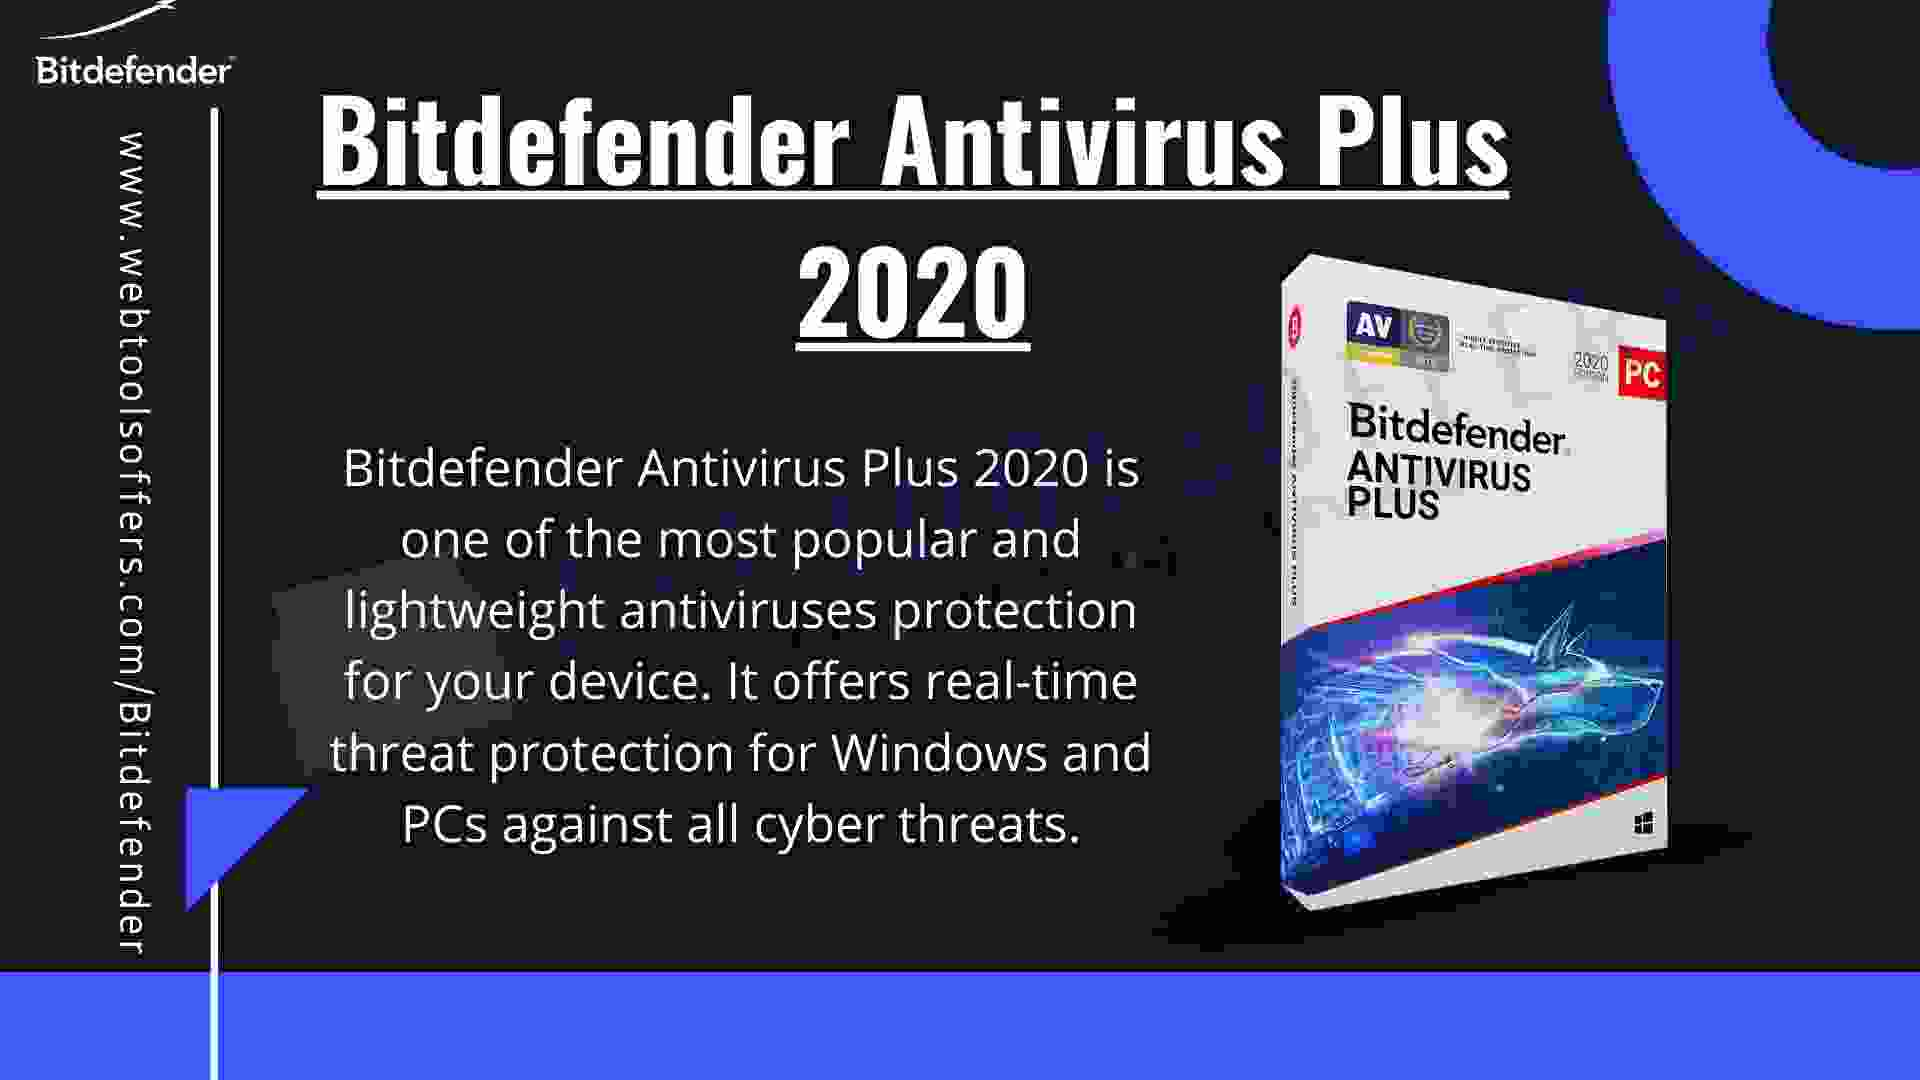 Bitdefender Antivirus Plus Coupons